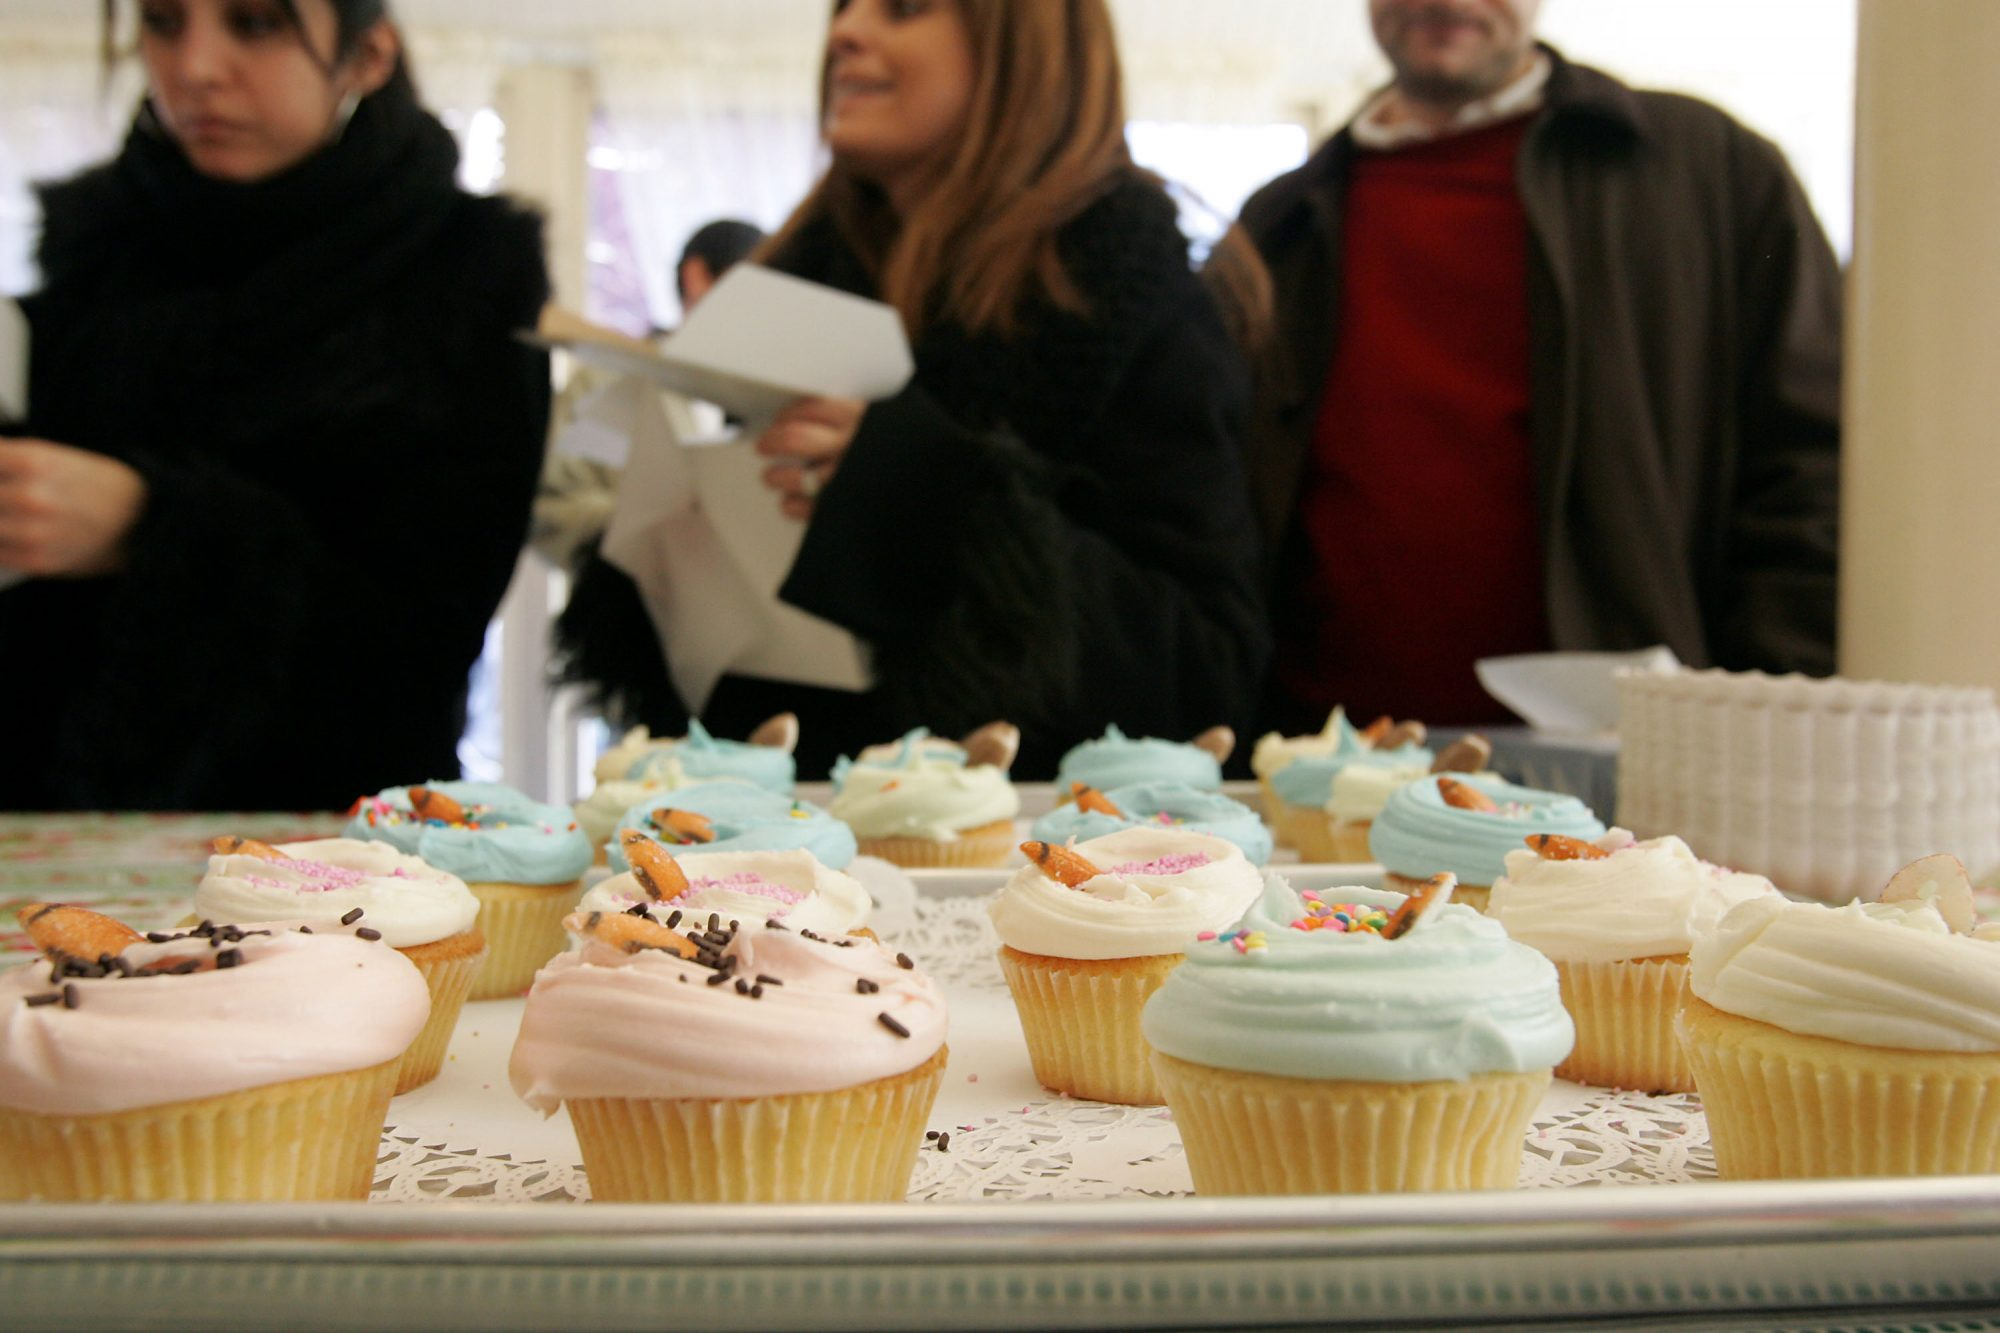 Magnolia-Cupcakes-Expands-Nationwide-2.jpg